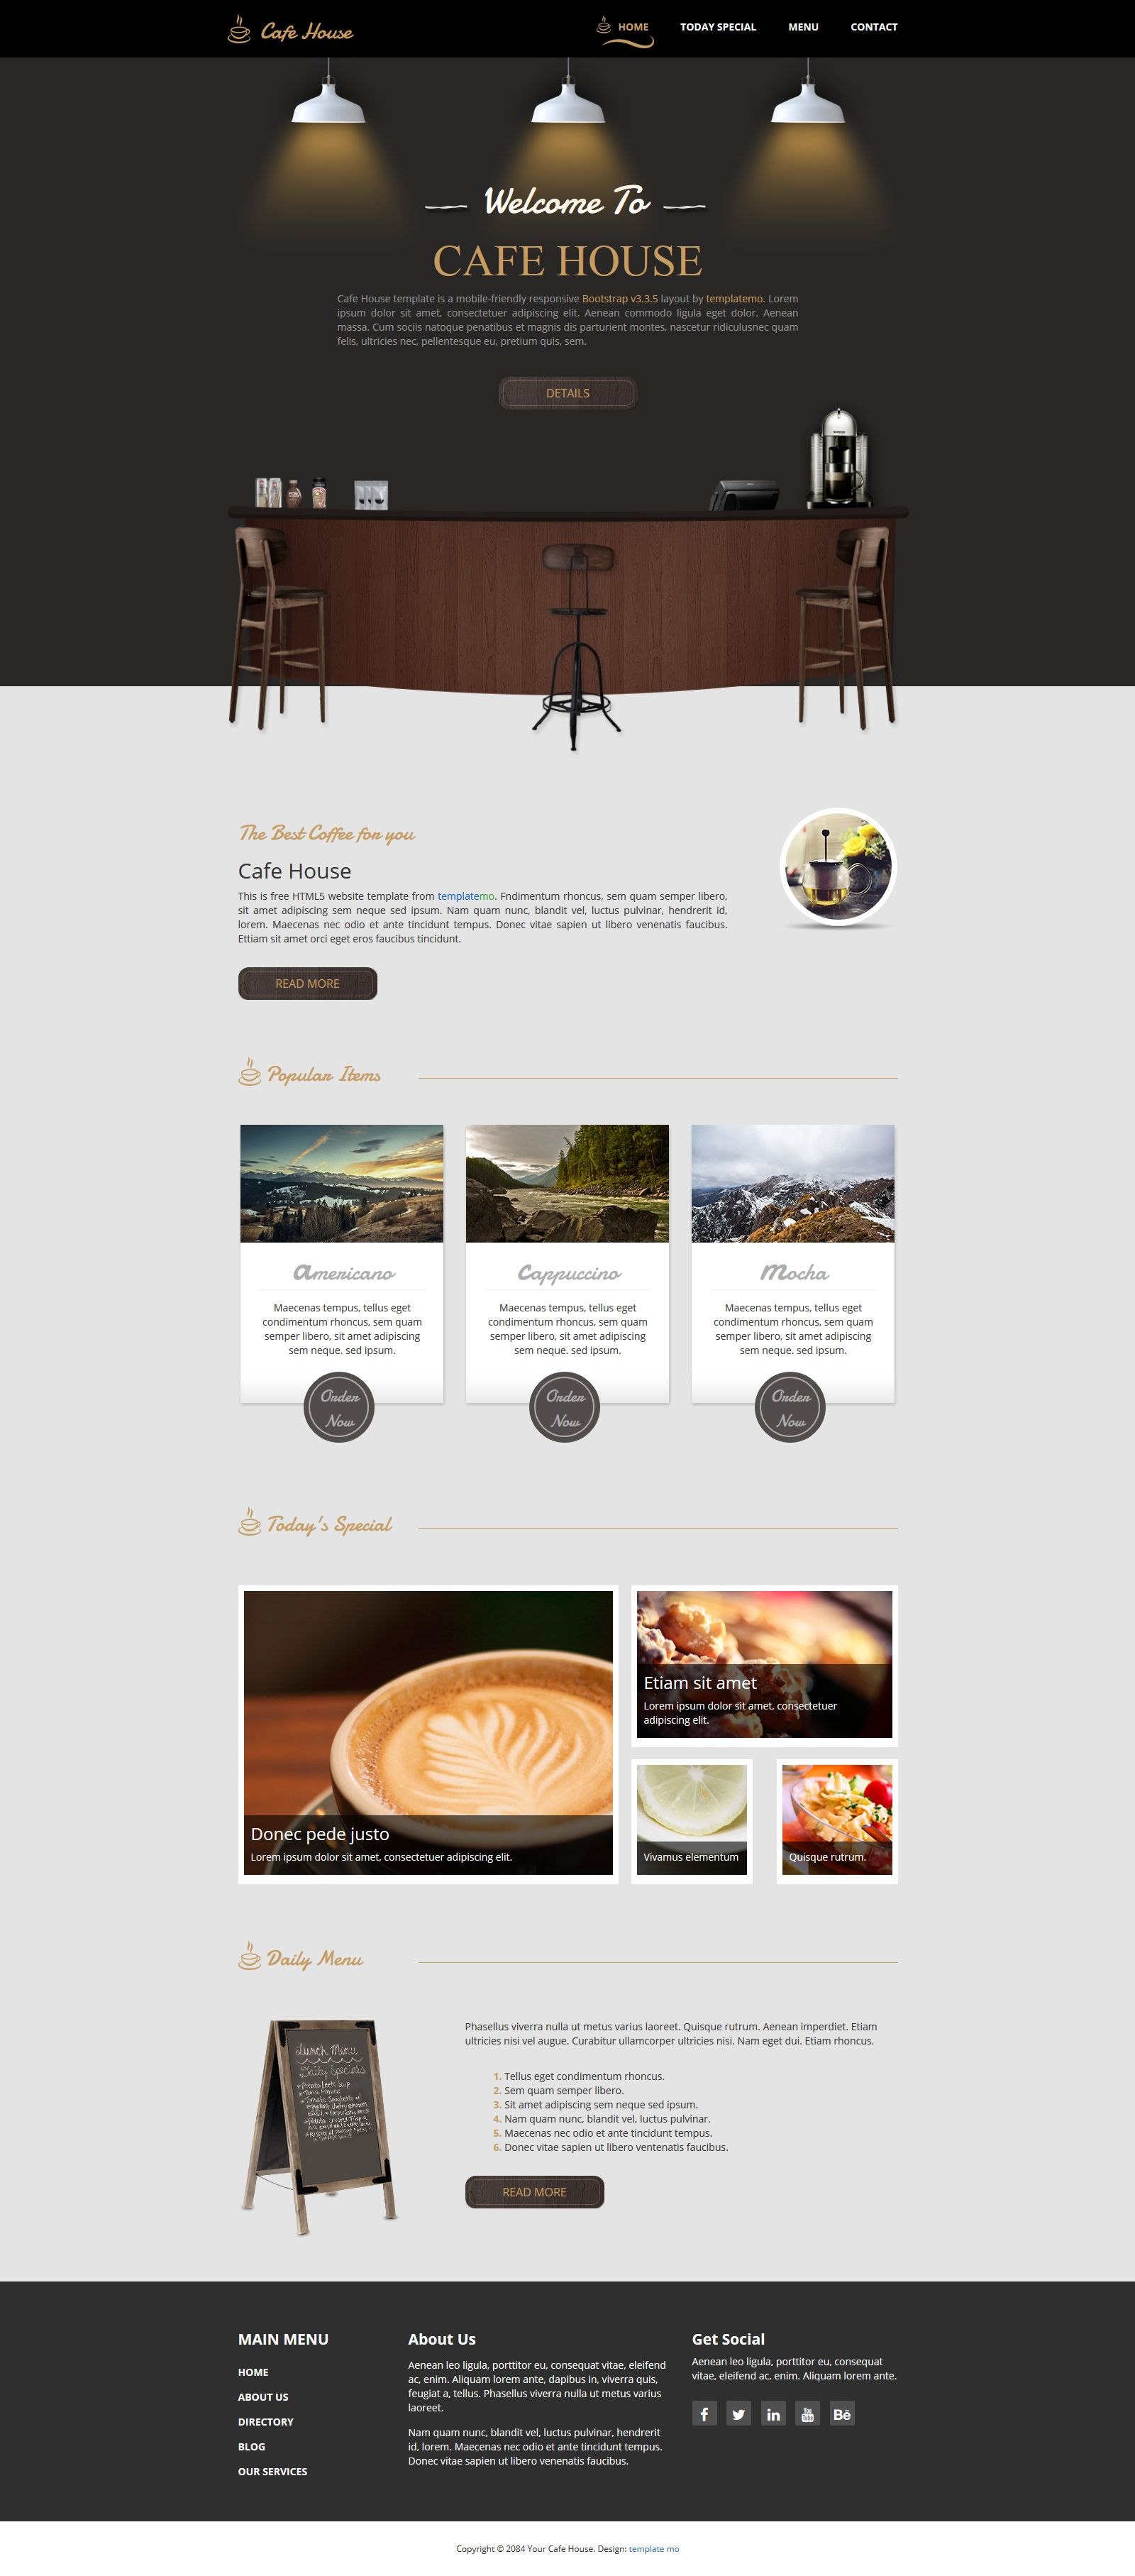 Cafe House Is A Mobile Friendly Bootstrap V3 3 5 Responsive Layout This Is A Small Coffee Shop Theme Design With Beautiful G Cafe House Small Coffee Shop Cafe